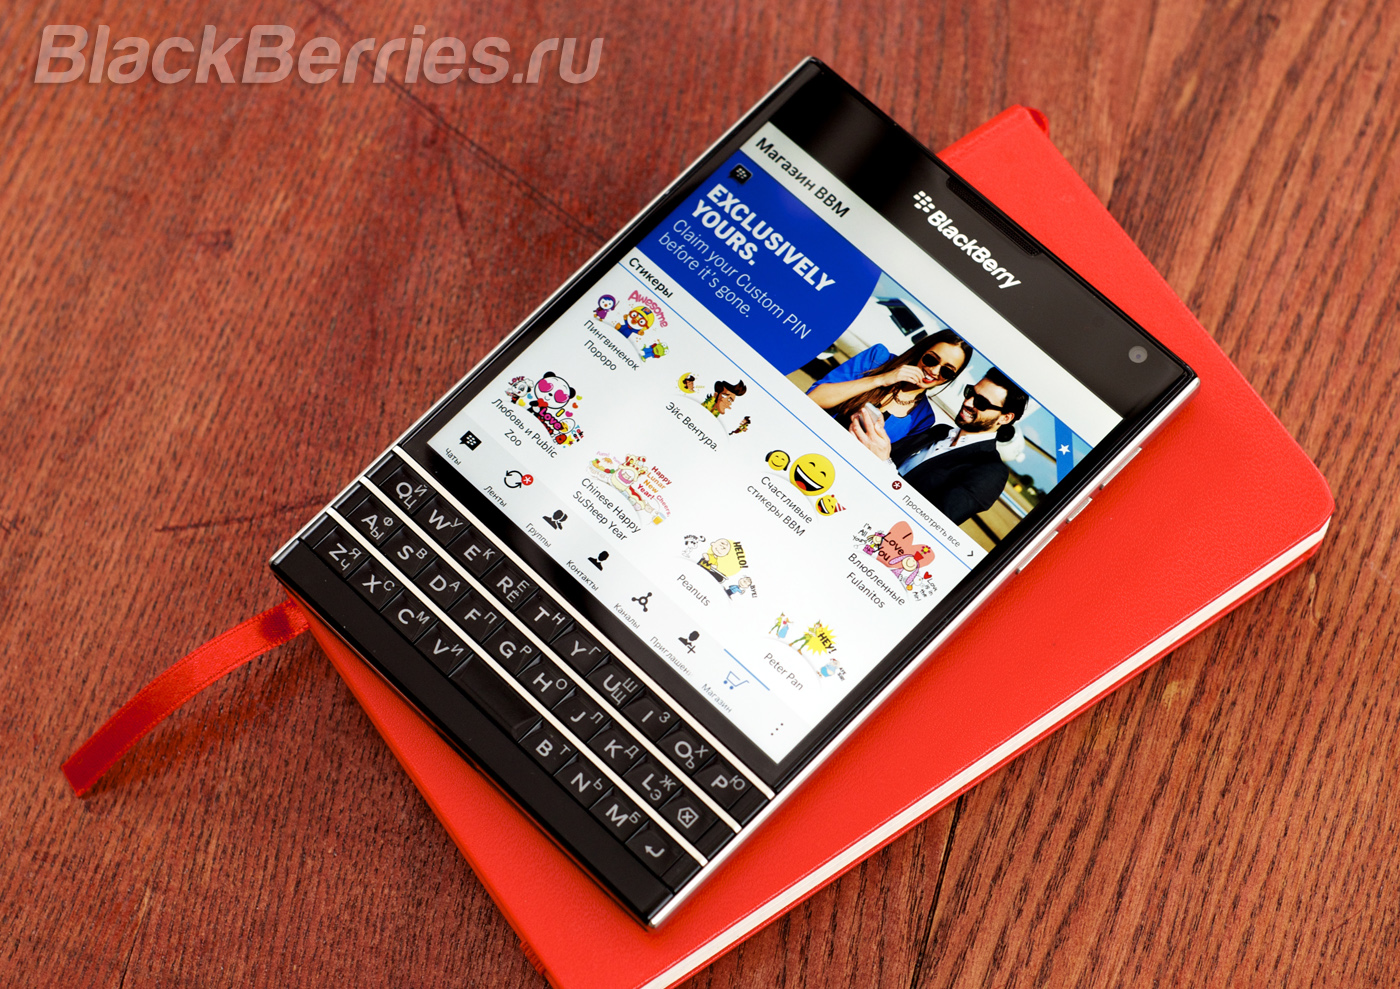 BlackBerry-Passport-BBM-Shop-2